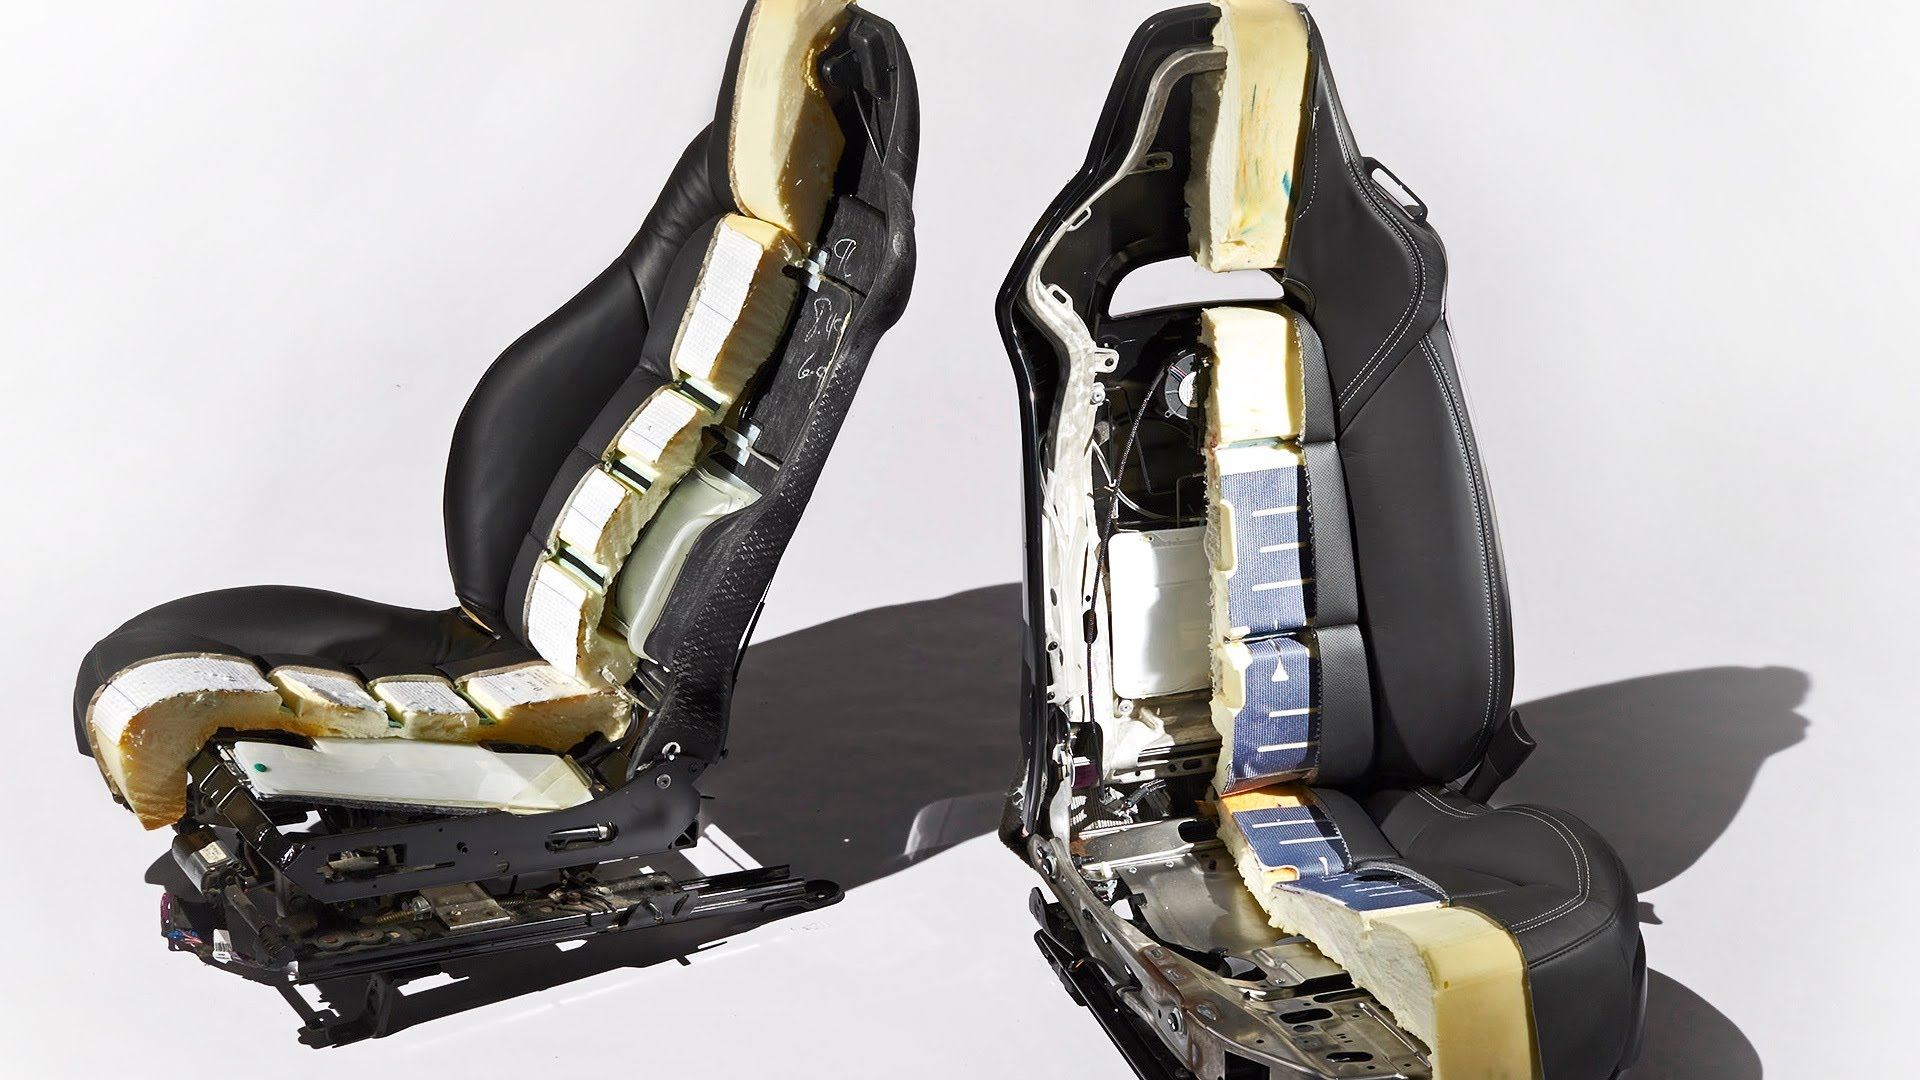 Corvette Seats Dissected: C6 vs. C7